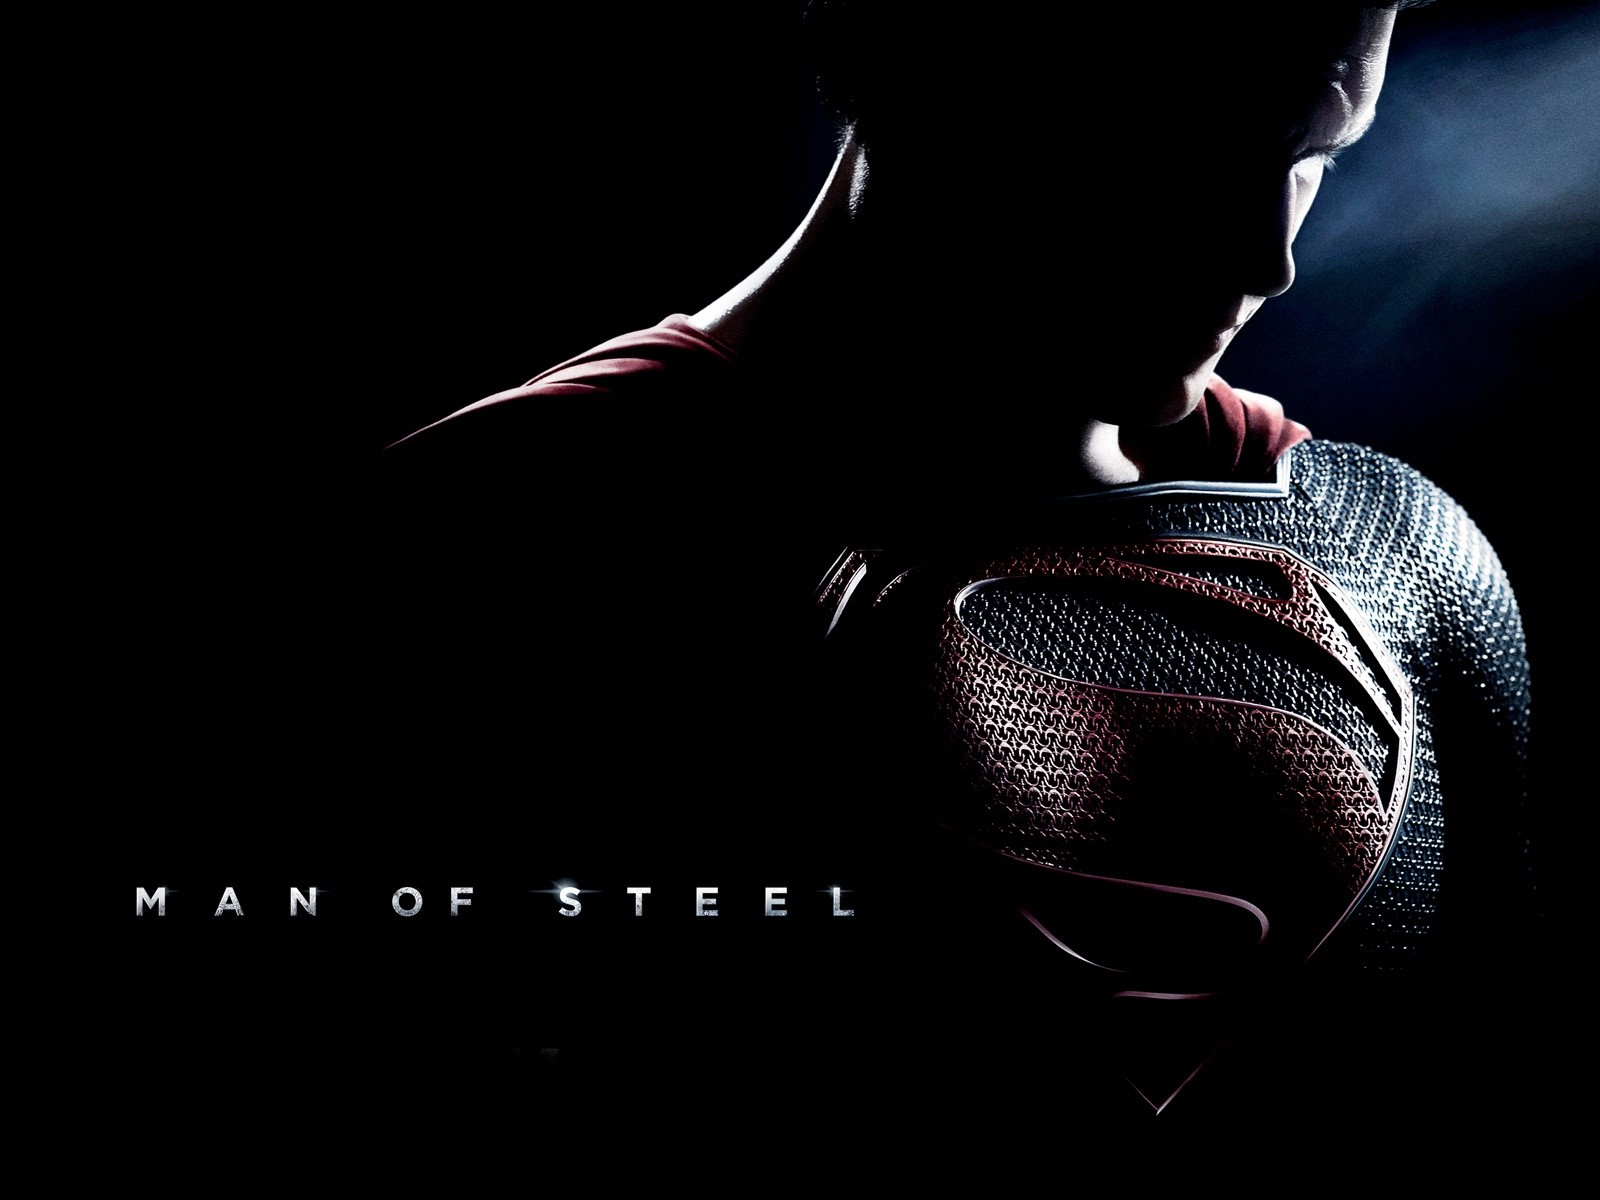 Fondos de pantalla Man of steel